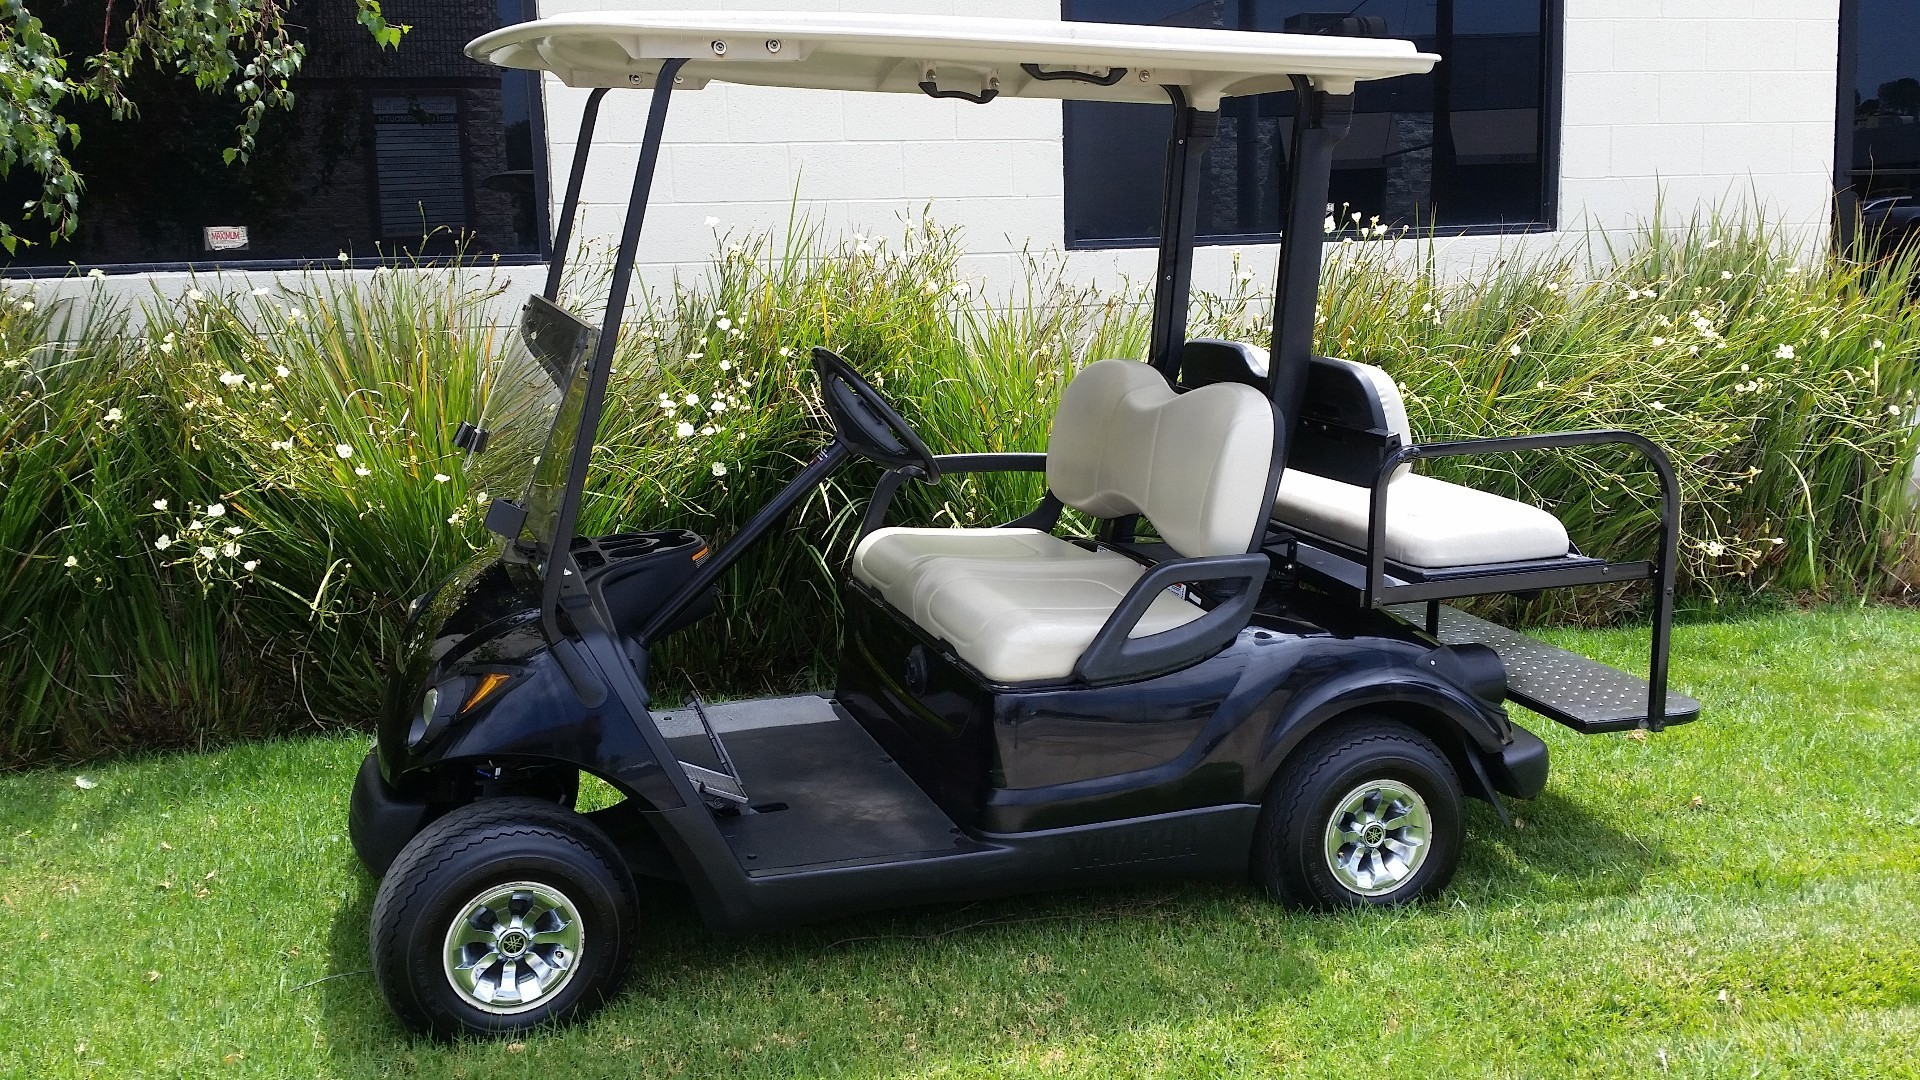 Welcome to Golf Cars and Industrial Vehicles